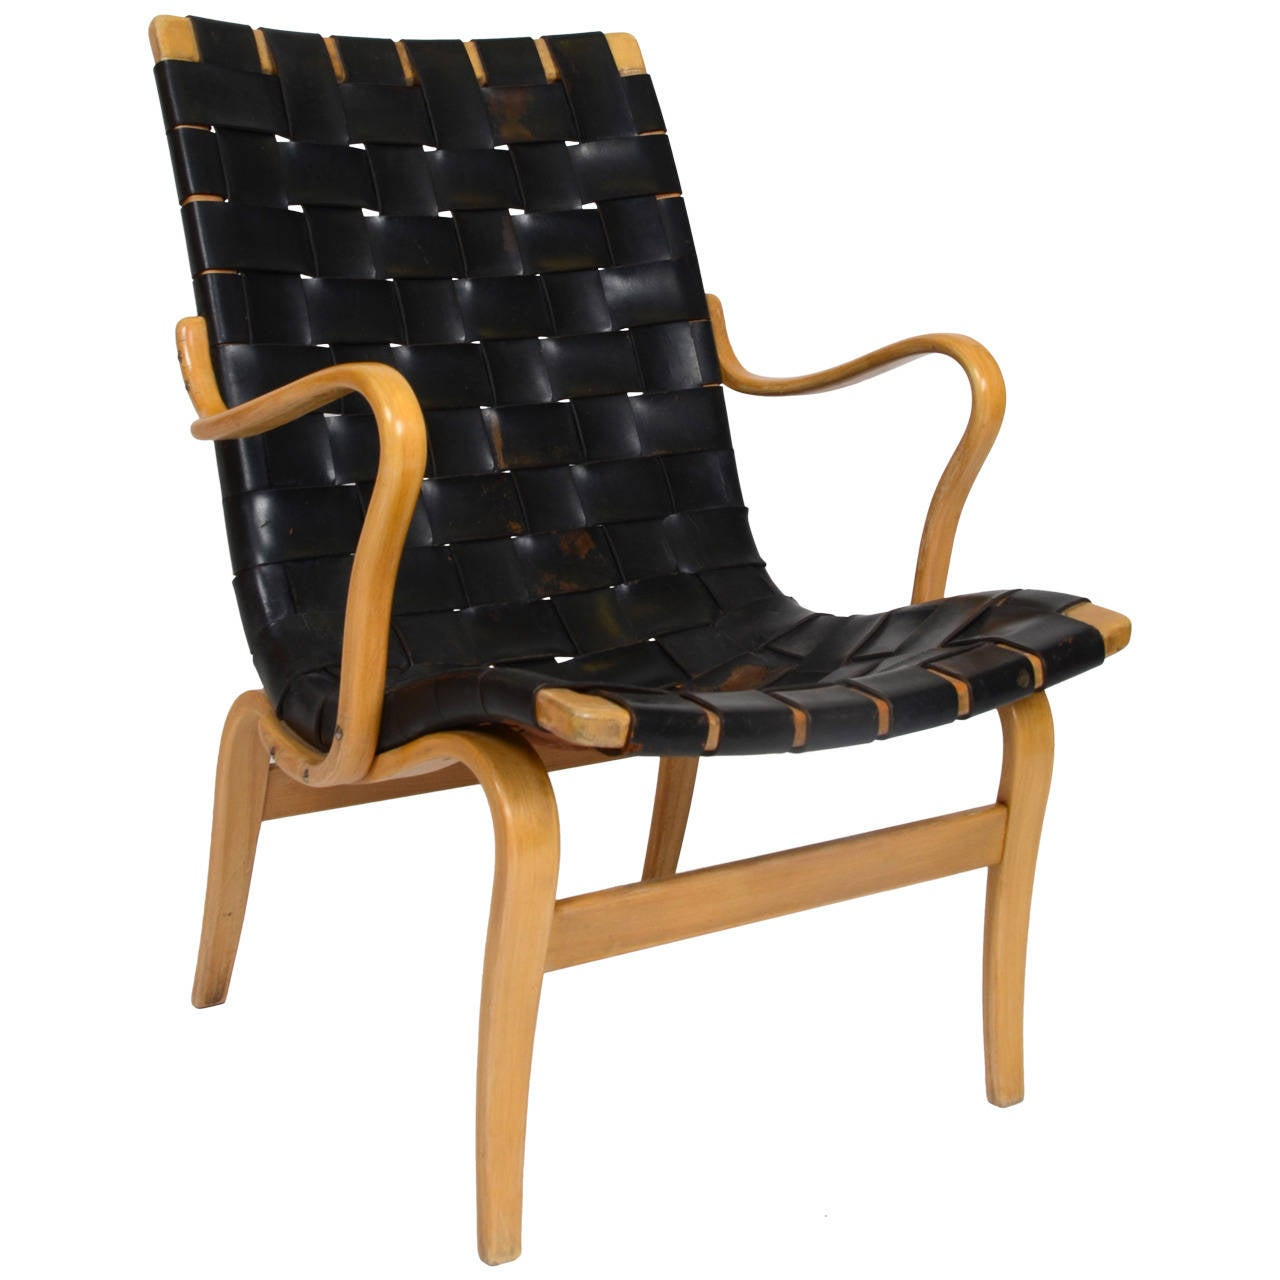 Eva Chair In Leather by Bruno Mathsson for Karl Mathsson, Sweden